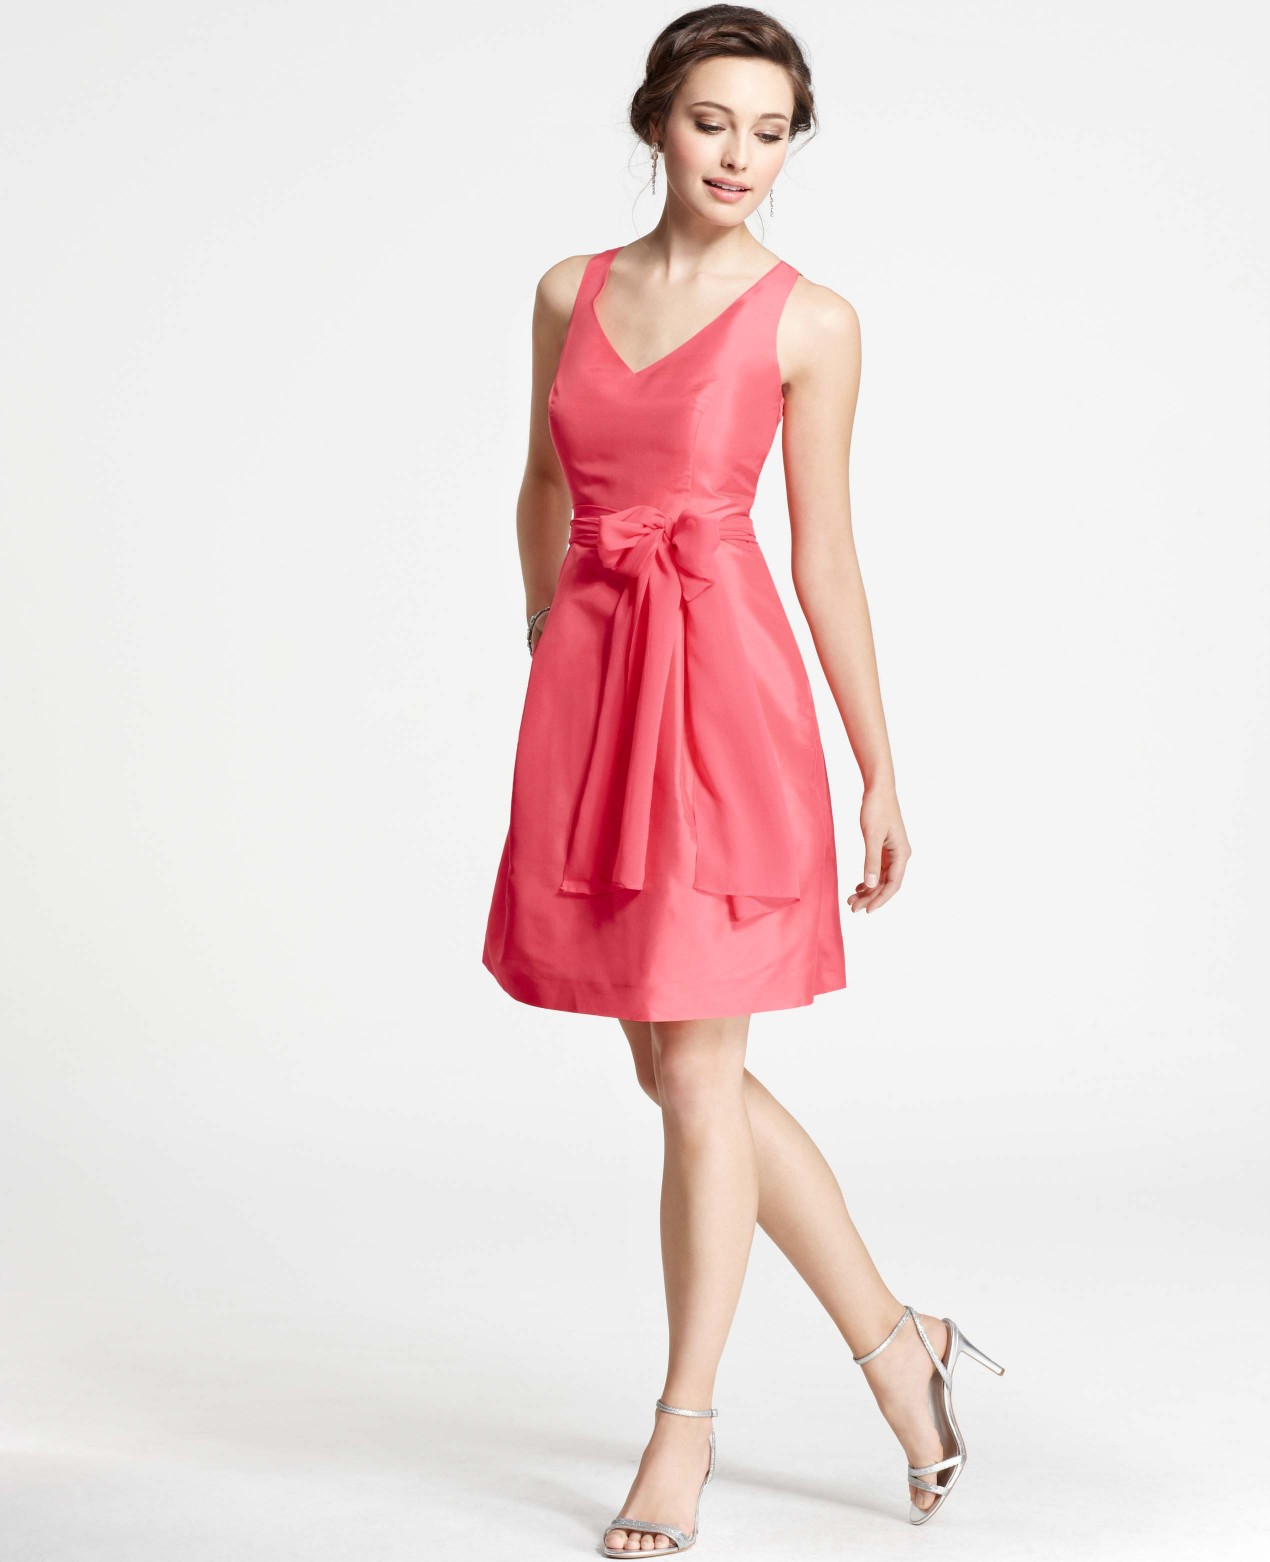 Dupioni silk bridesmaid dresses dress yp ann taylor silk dupioni v neck bridesmaid dress in pink lyst ombrellifo Images